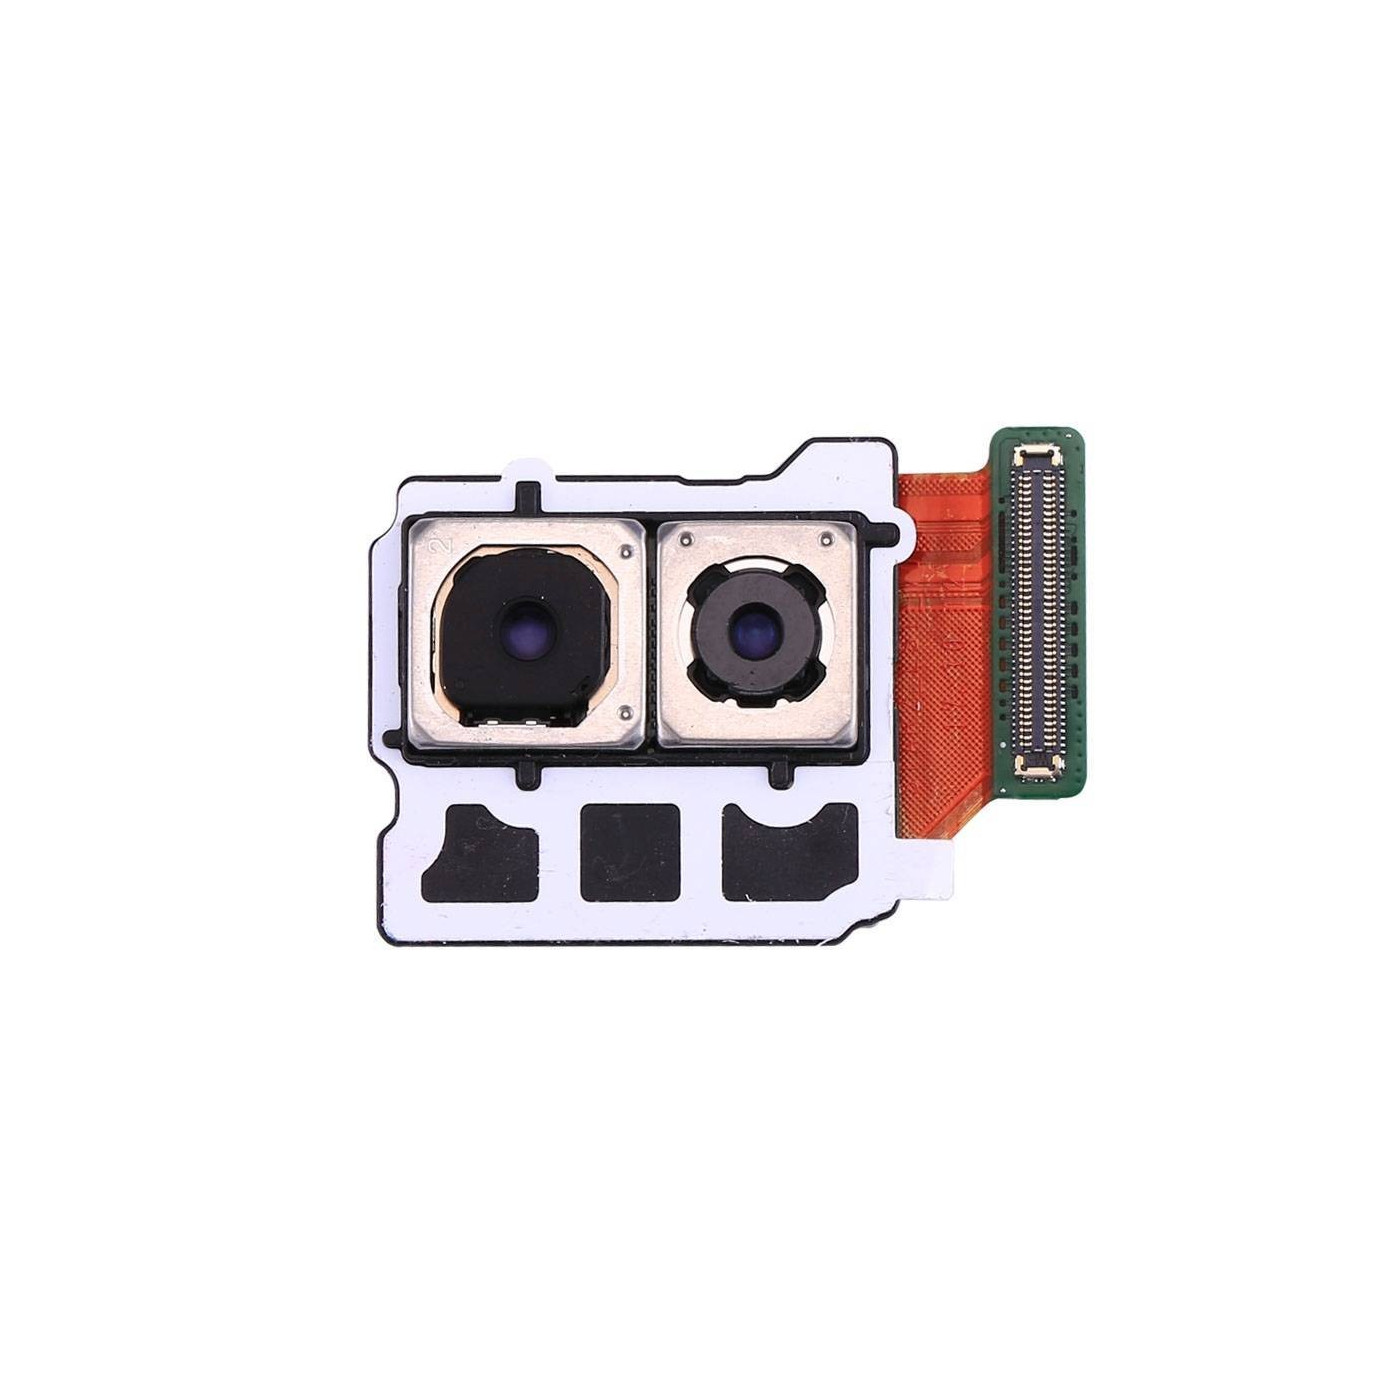 Replacement rear camera for Galaxy Room S9 + G965F